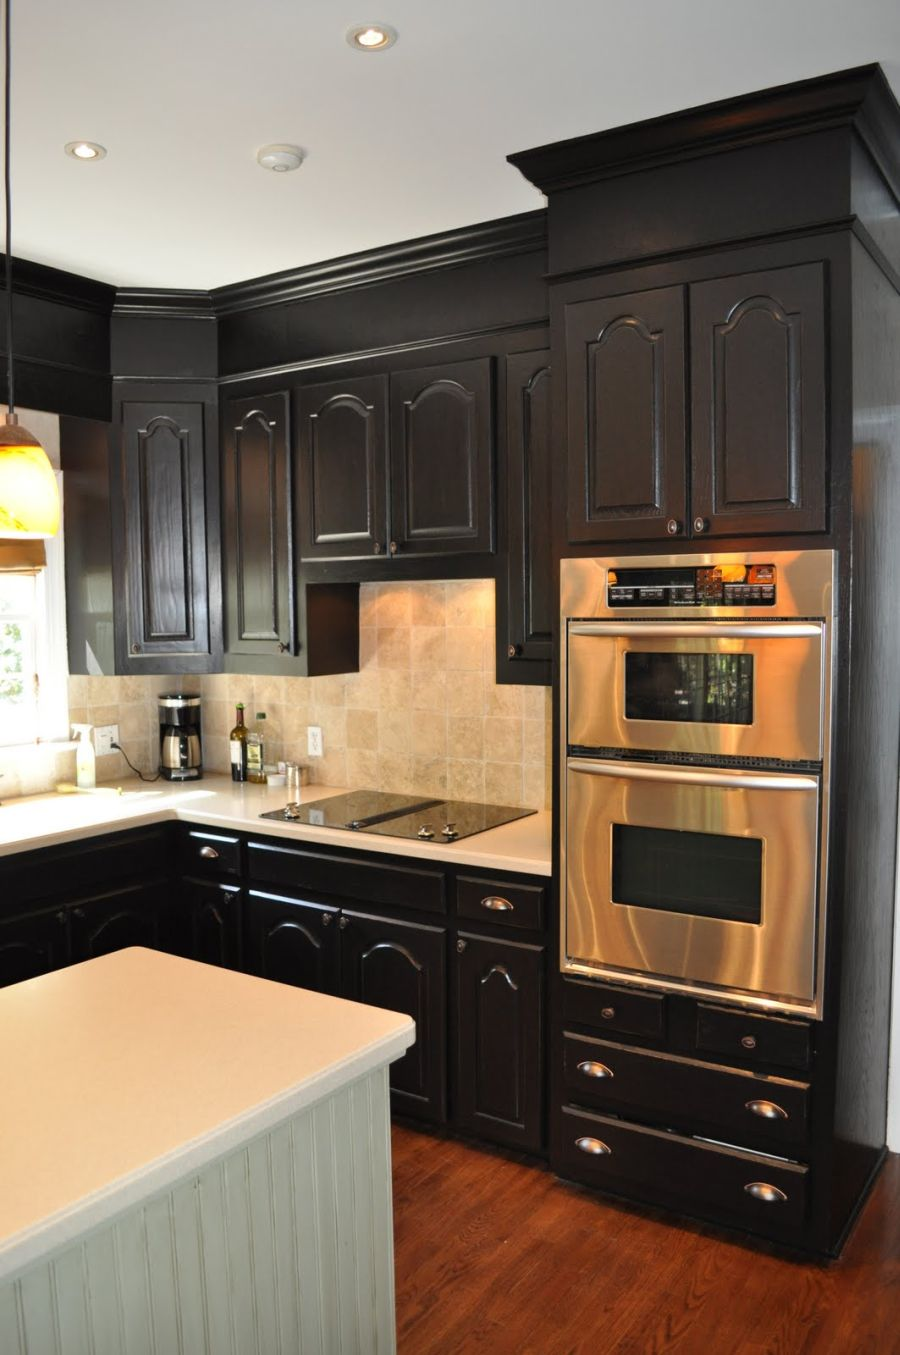 black kitchen cabinets modern steel kitchen cabinets with black design ORBJPXZ